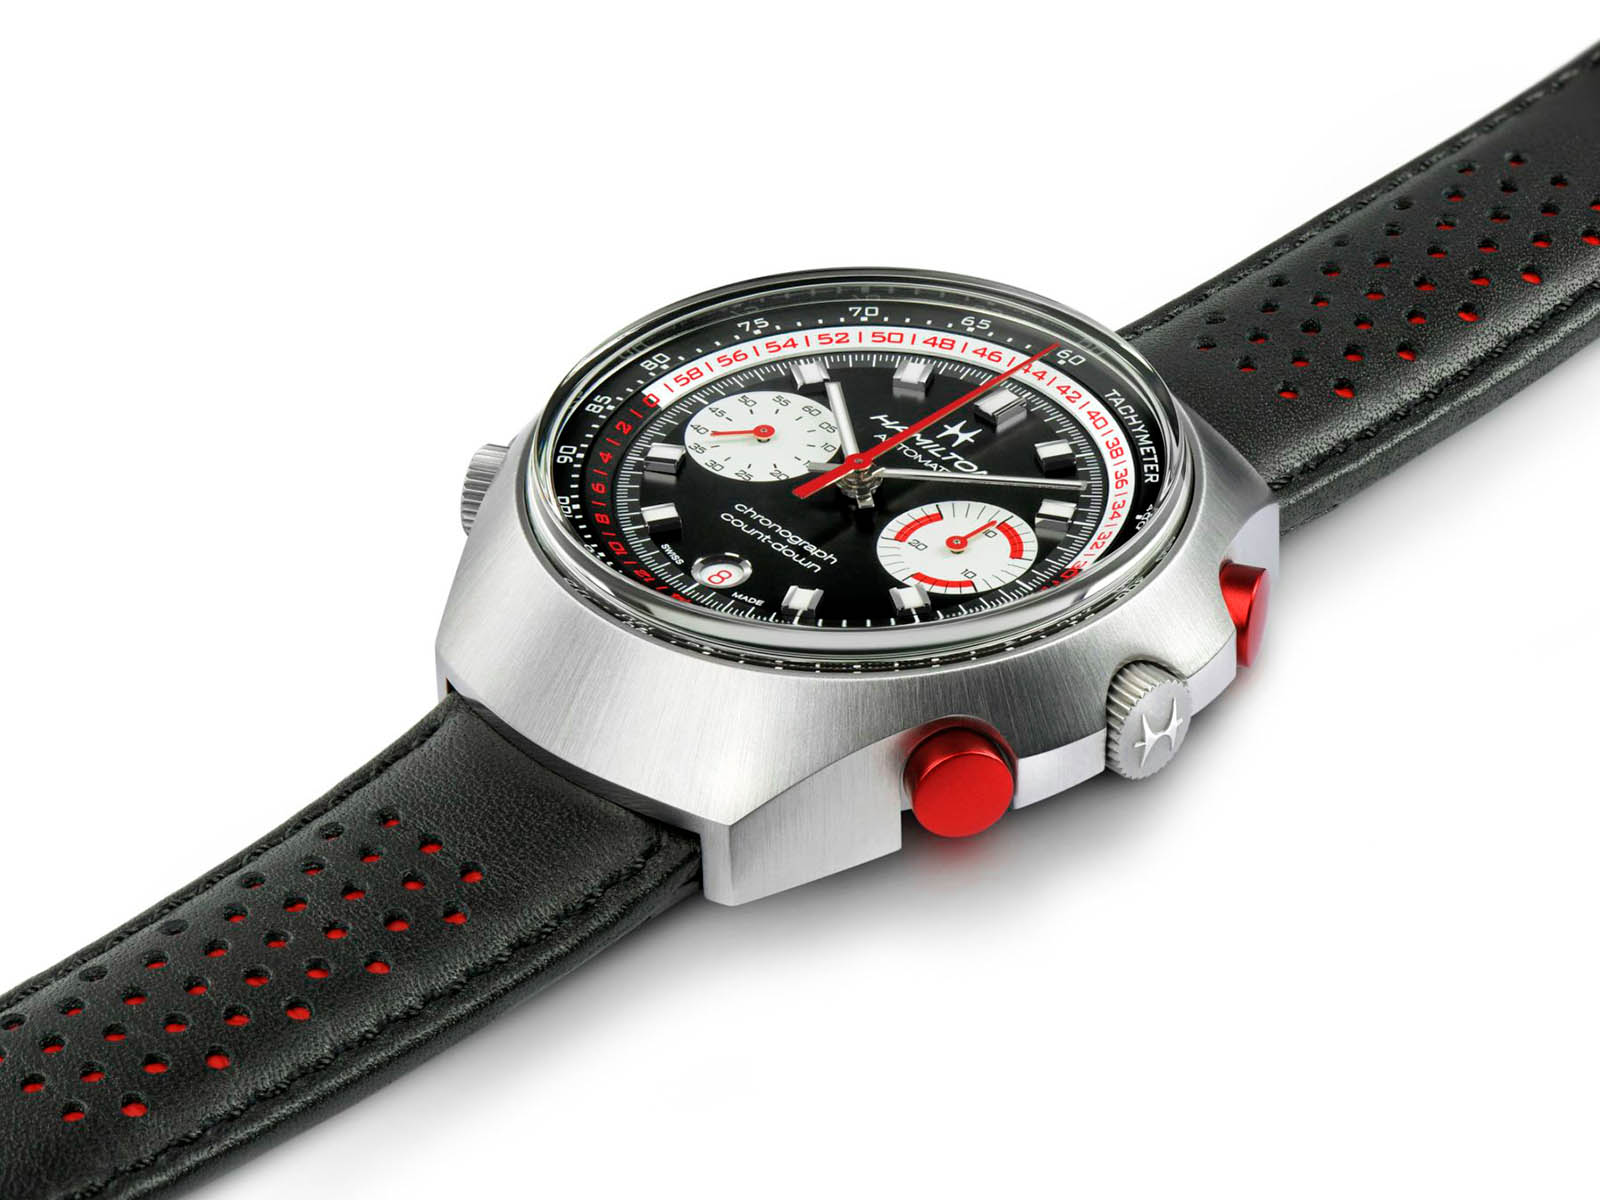 h51616731-hamilton-chrono-matic-50-auto-chrono-limited-edition-5.jpg